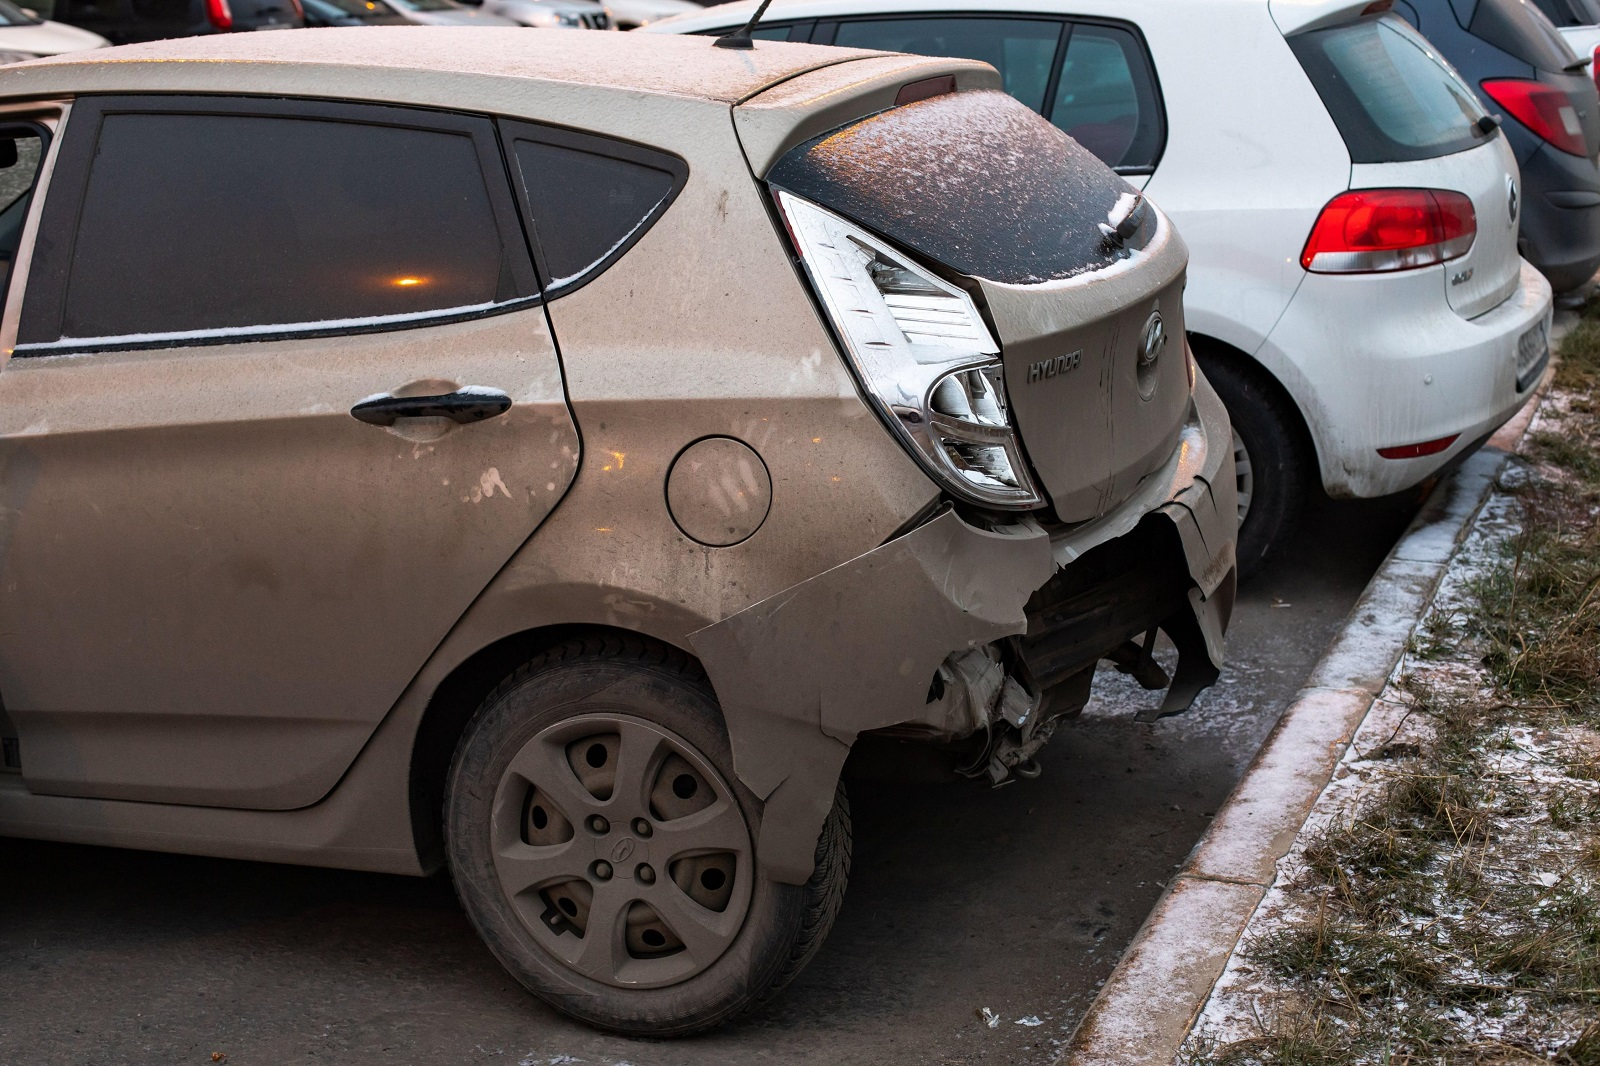 Moscow, Russia - December 29, 2019: Hyundai Solaris car after the accident crash, a broken bumper and a crumpled car body close-up. Broken Hyundai, a Korean car with a torn rear bumper, Image: 495907255, License: Royalty-free, Restrictions: , Model Release: no, Credit line: Olga Korica / Alamy / Alamy / Profimedia